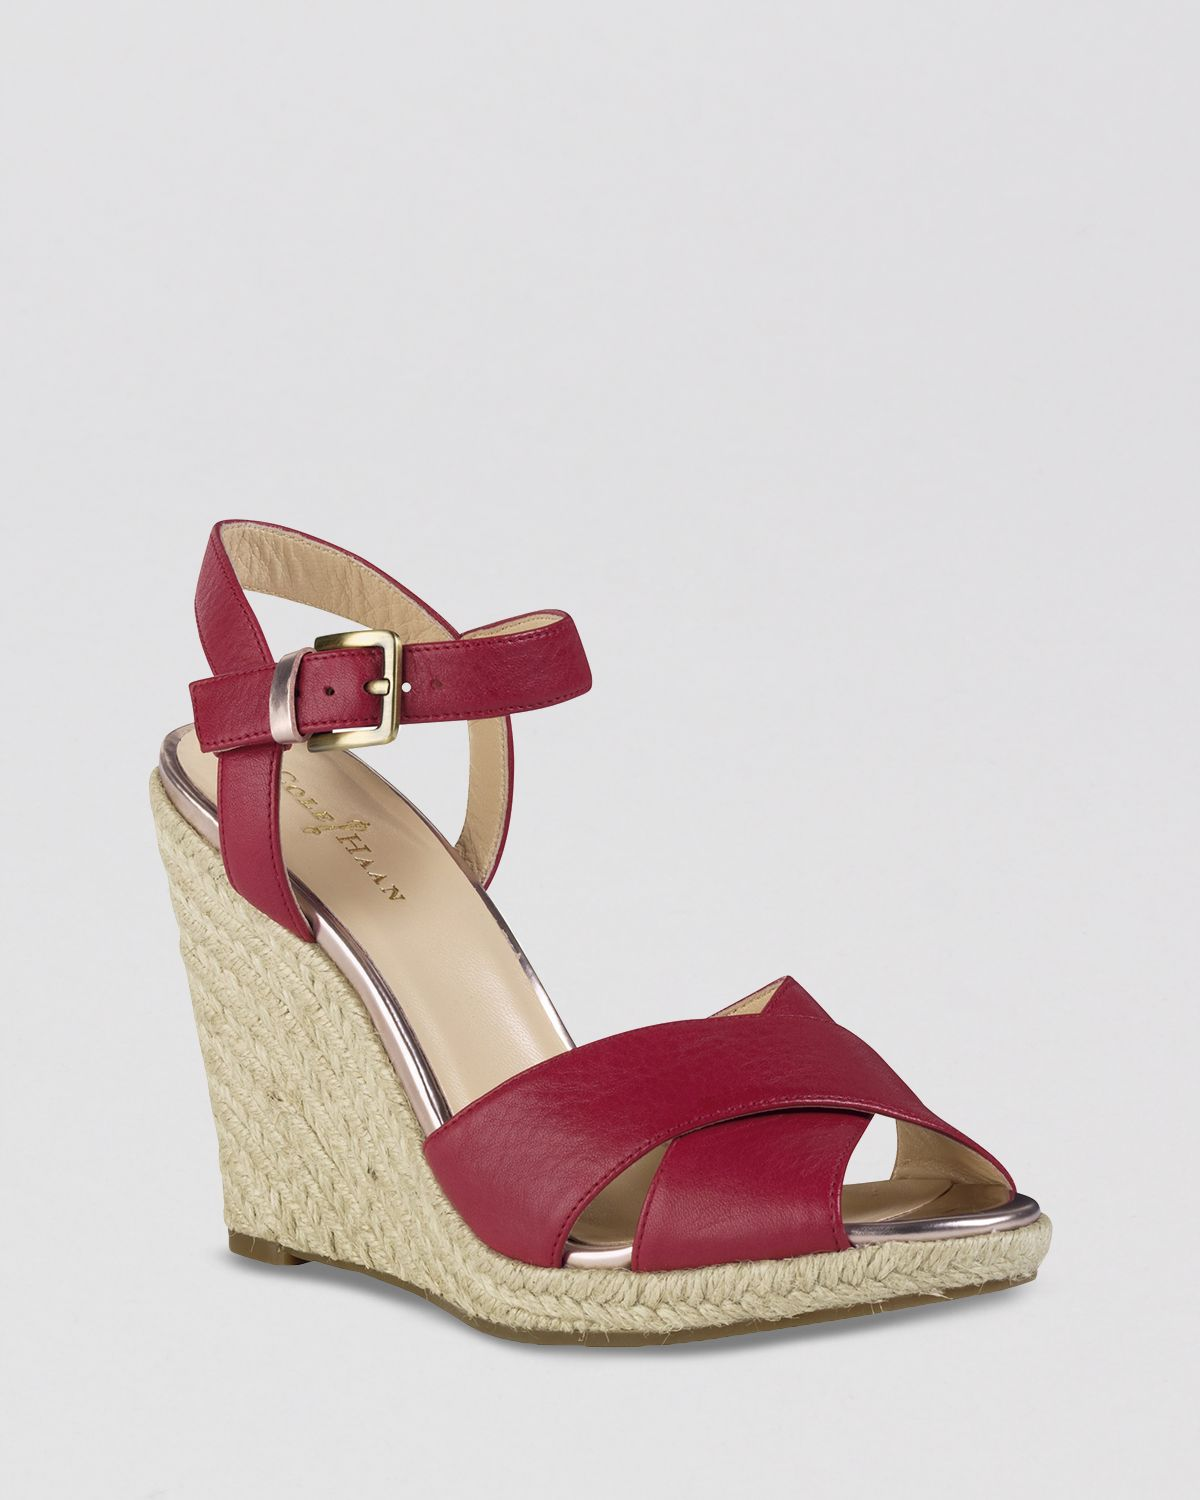 Find Womens Peep Toe Wedge shoes, Juniors Peep Toe Wedge shoes and more at Macys. Macy's Presents: The Edit - A curated mix of fashion and inspiration Check It Out Free Shipping with $49 purchase + Free Store Pickup.